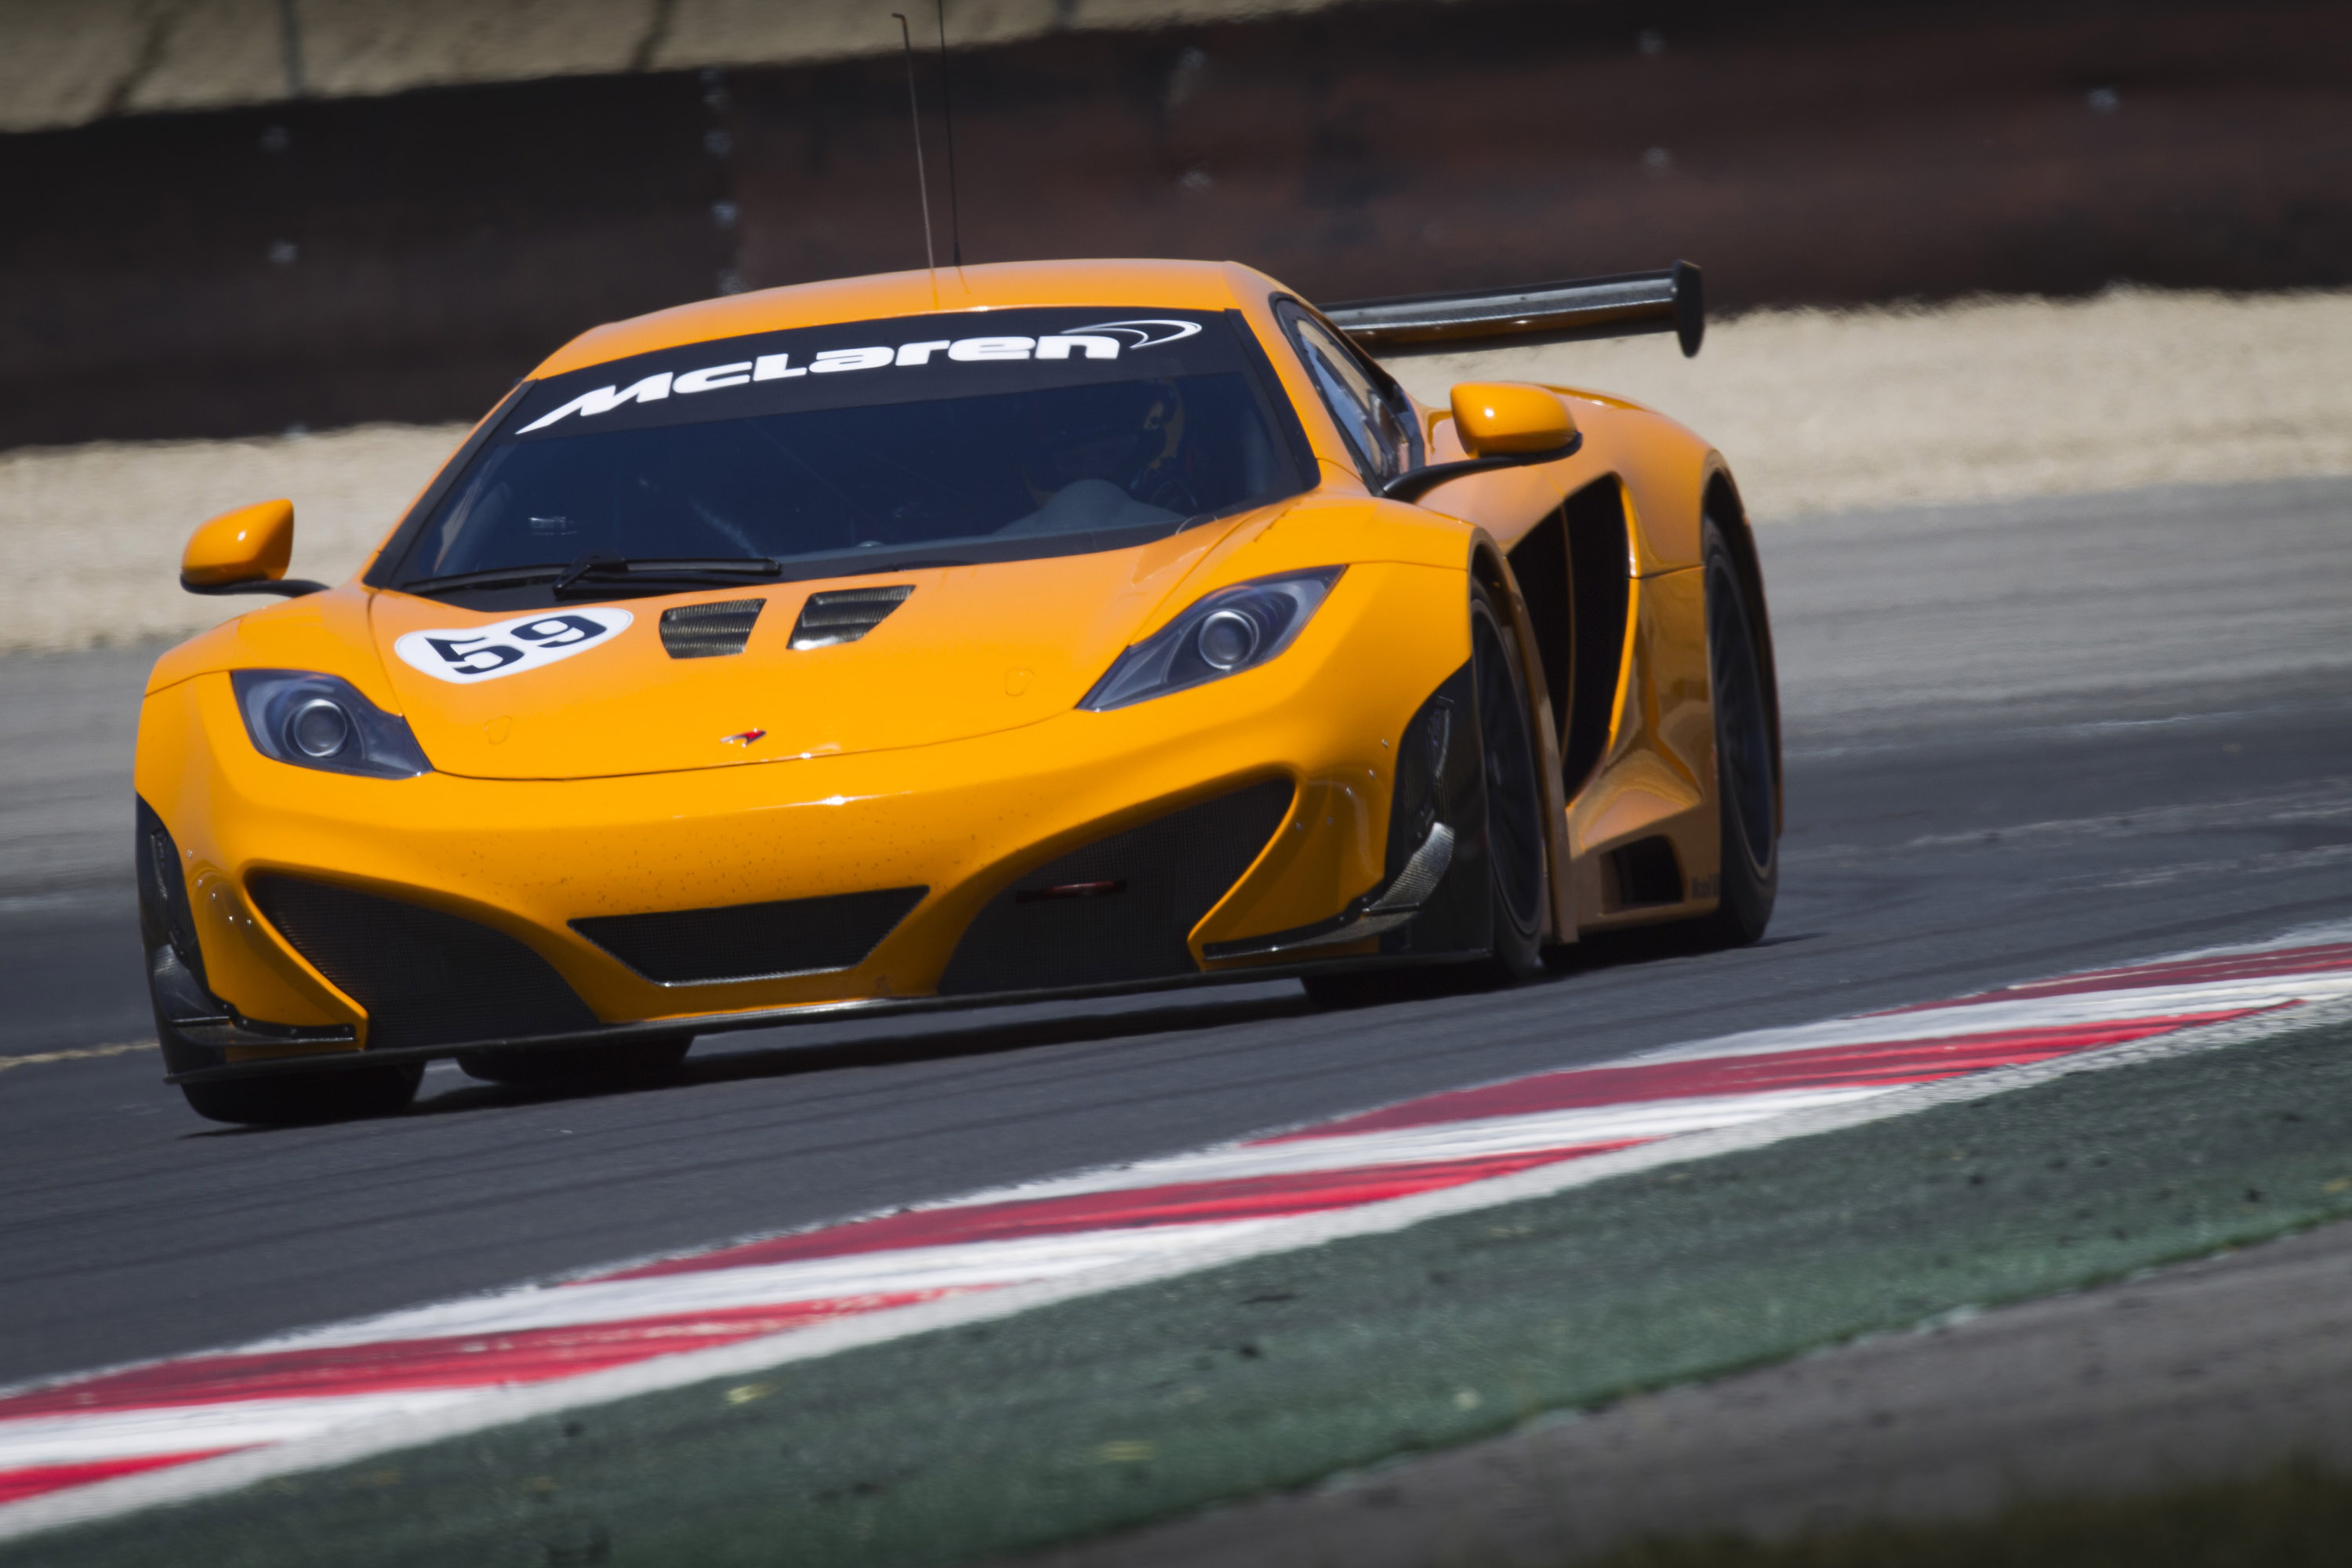 McLaren MP4-12C GT3 Race Car - Picture 56913